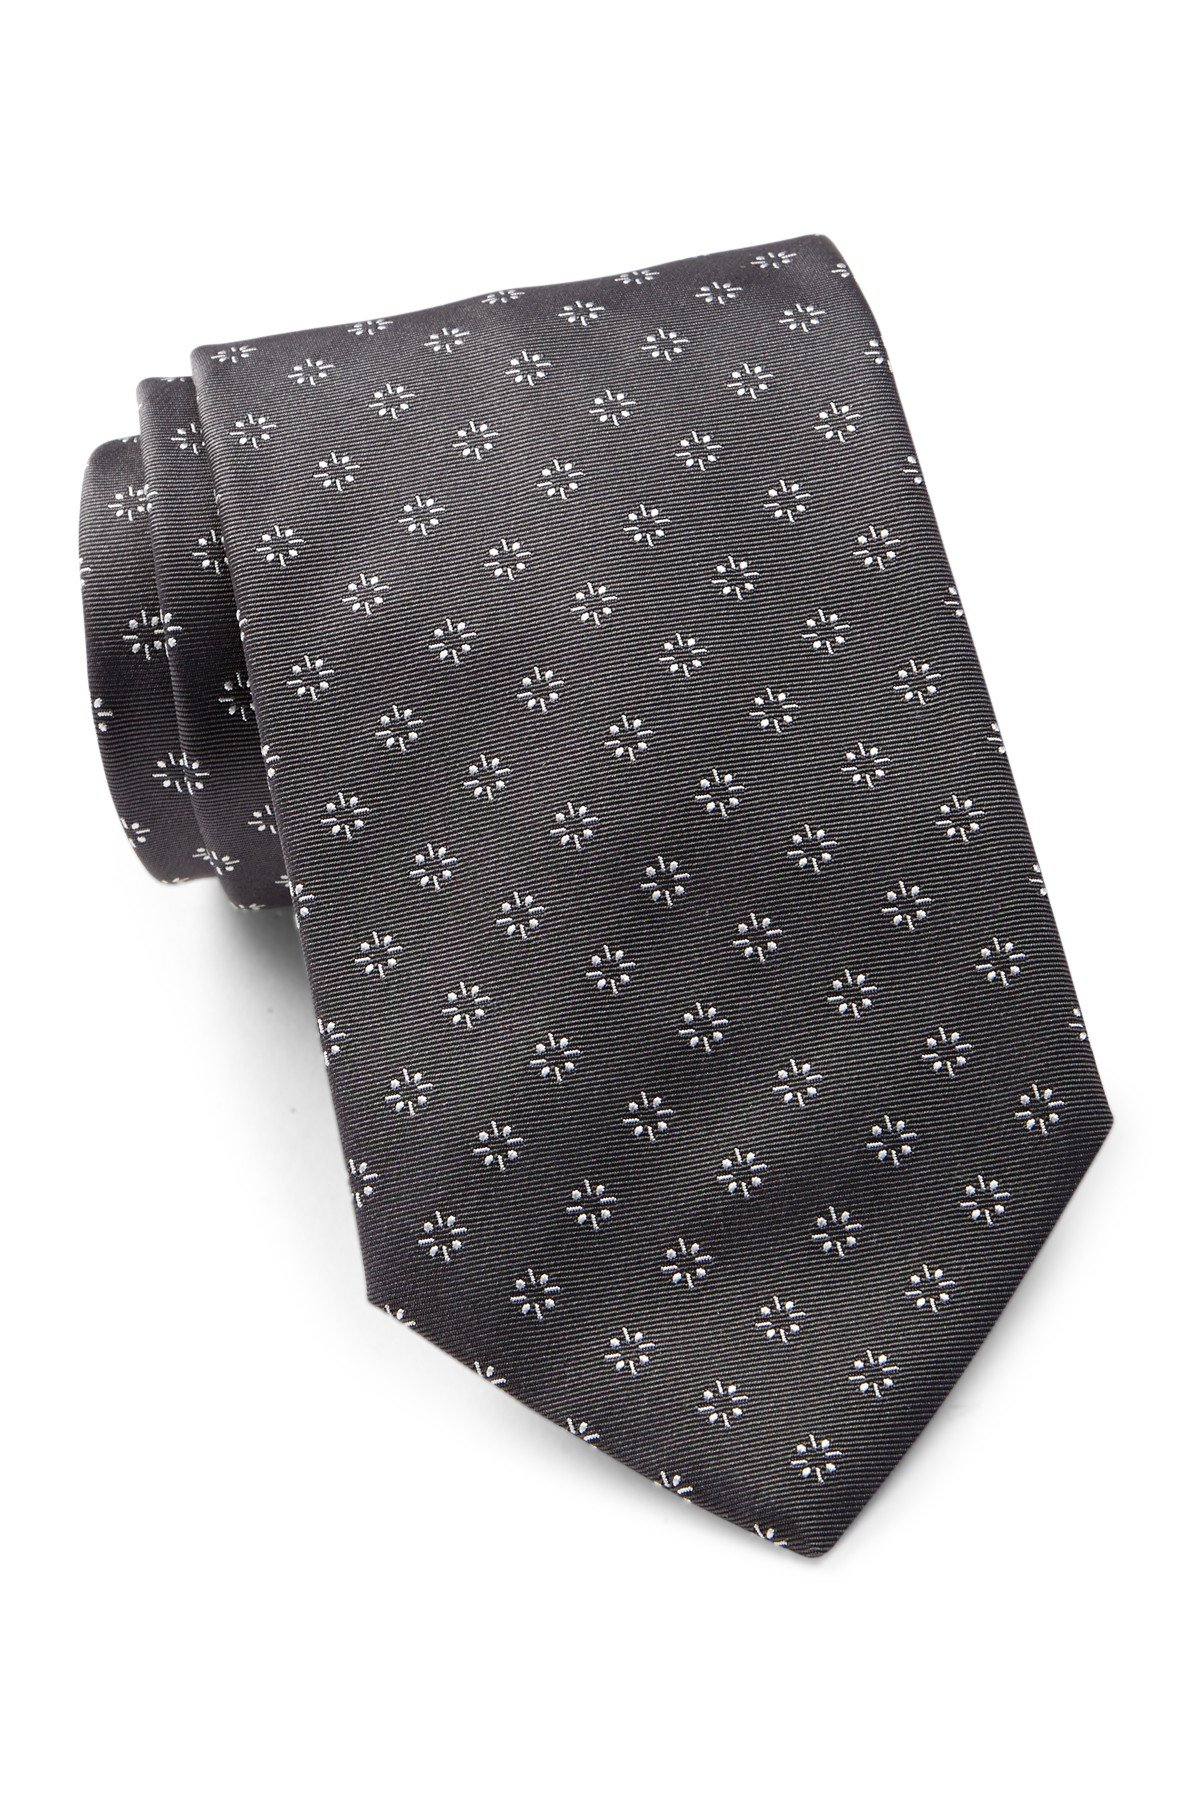 Hugo Boss Men's Patterned Silk Tie, OS, Charcoal